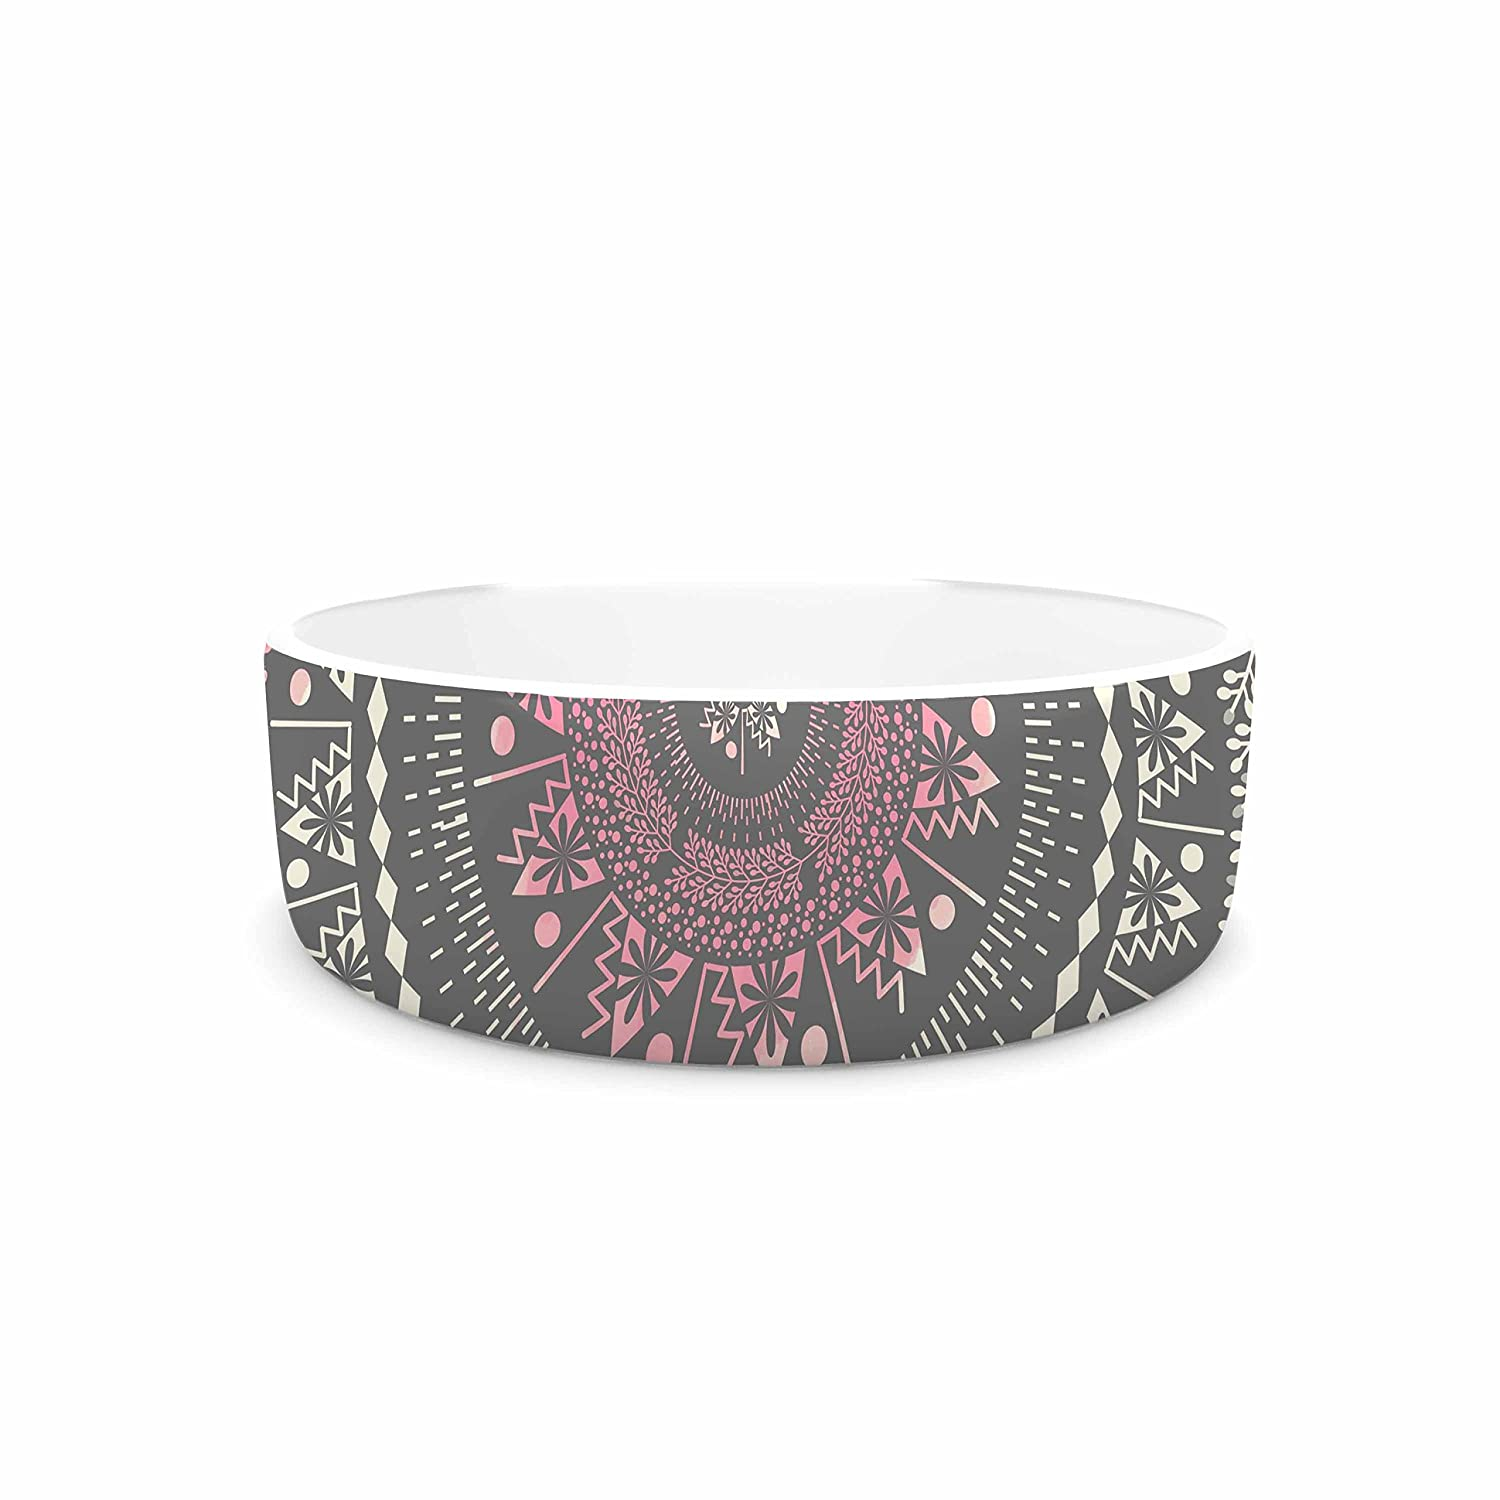 7\ KESS InHouse Famenxt Culture Cut Boho Mandala  Pink Ilustration Pet Bowl, 7